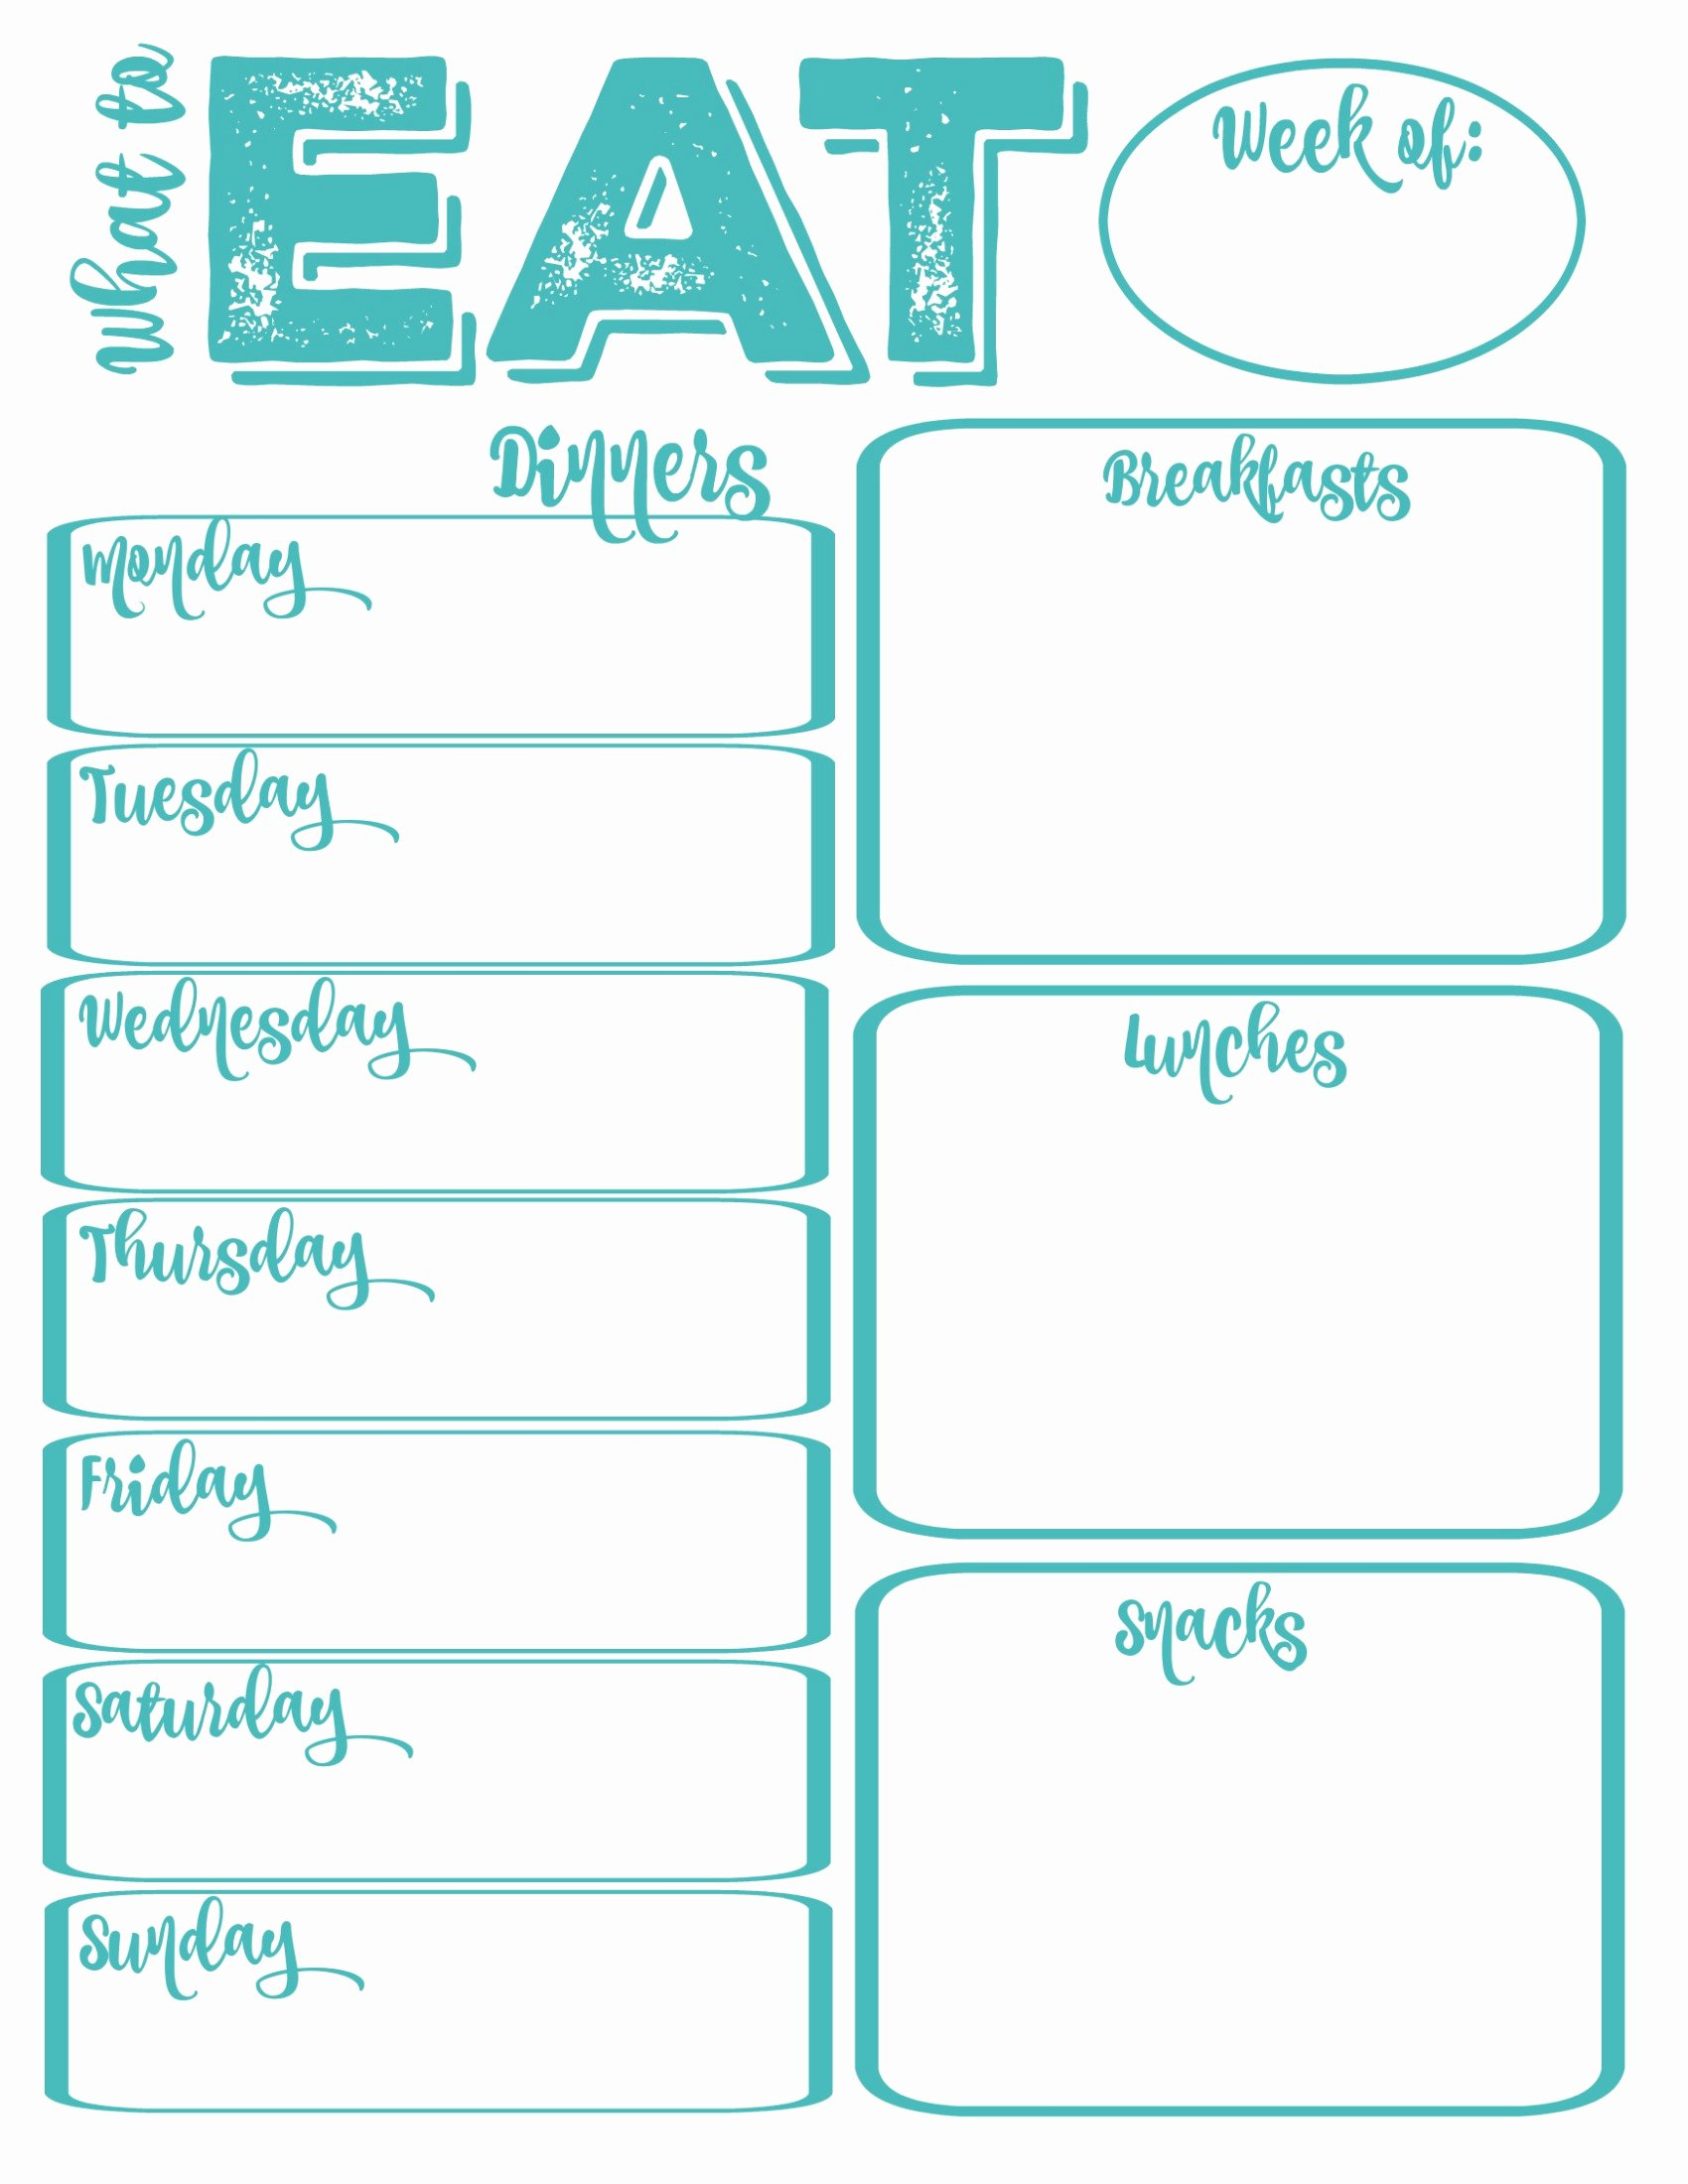 Meal Plan Calendar Template Elegant Pantry Makeover Free Printable Weekly Meal Planner and